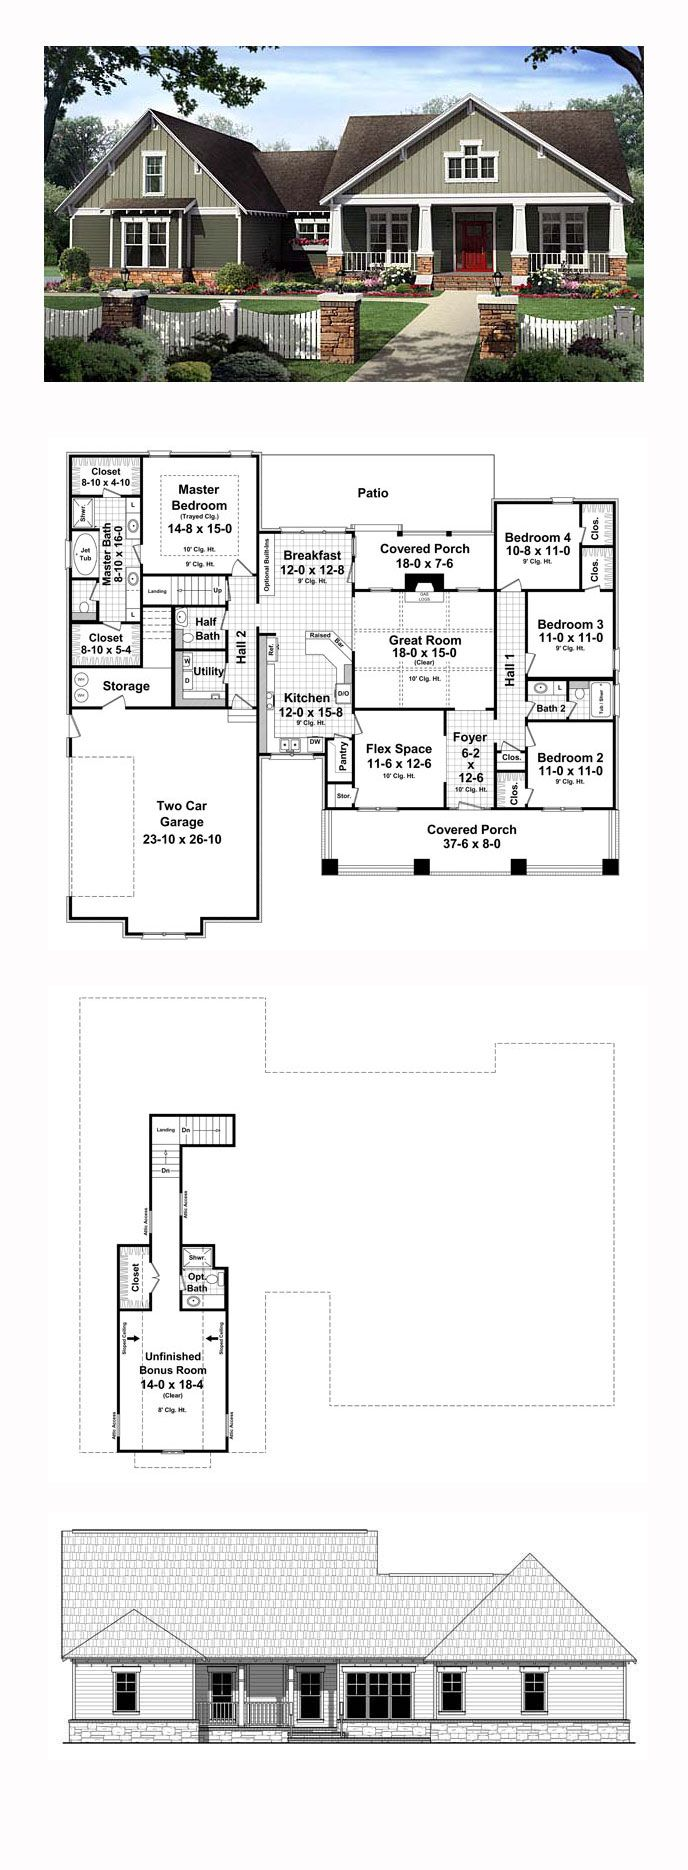 Bungalow House Plan 59207 Total Living Area 2199 Sq Ft: four bedroom bungalow plan